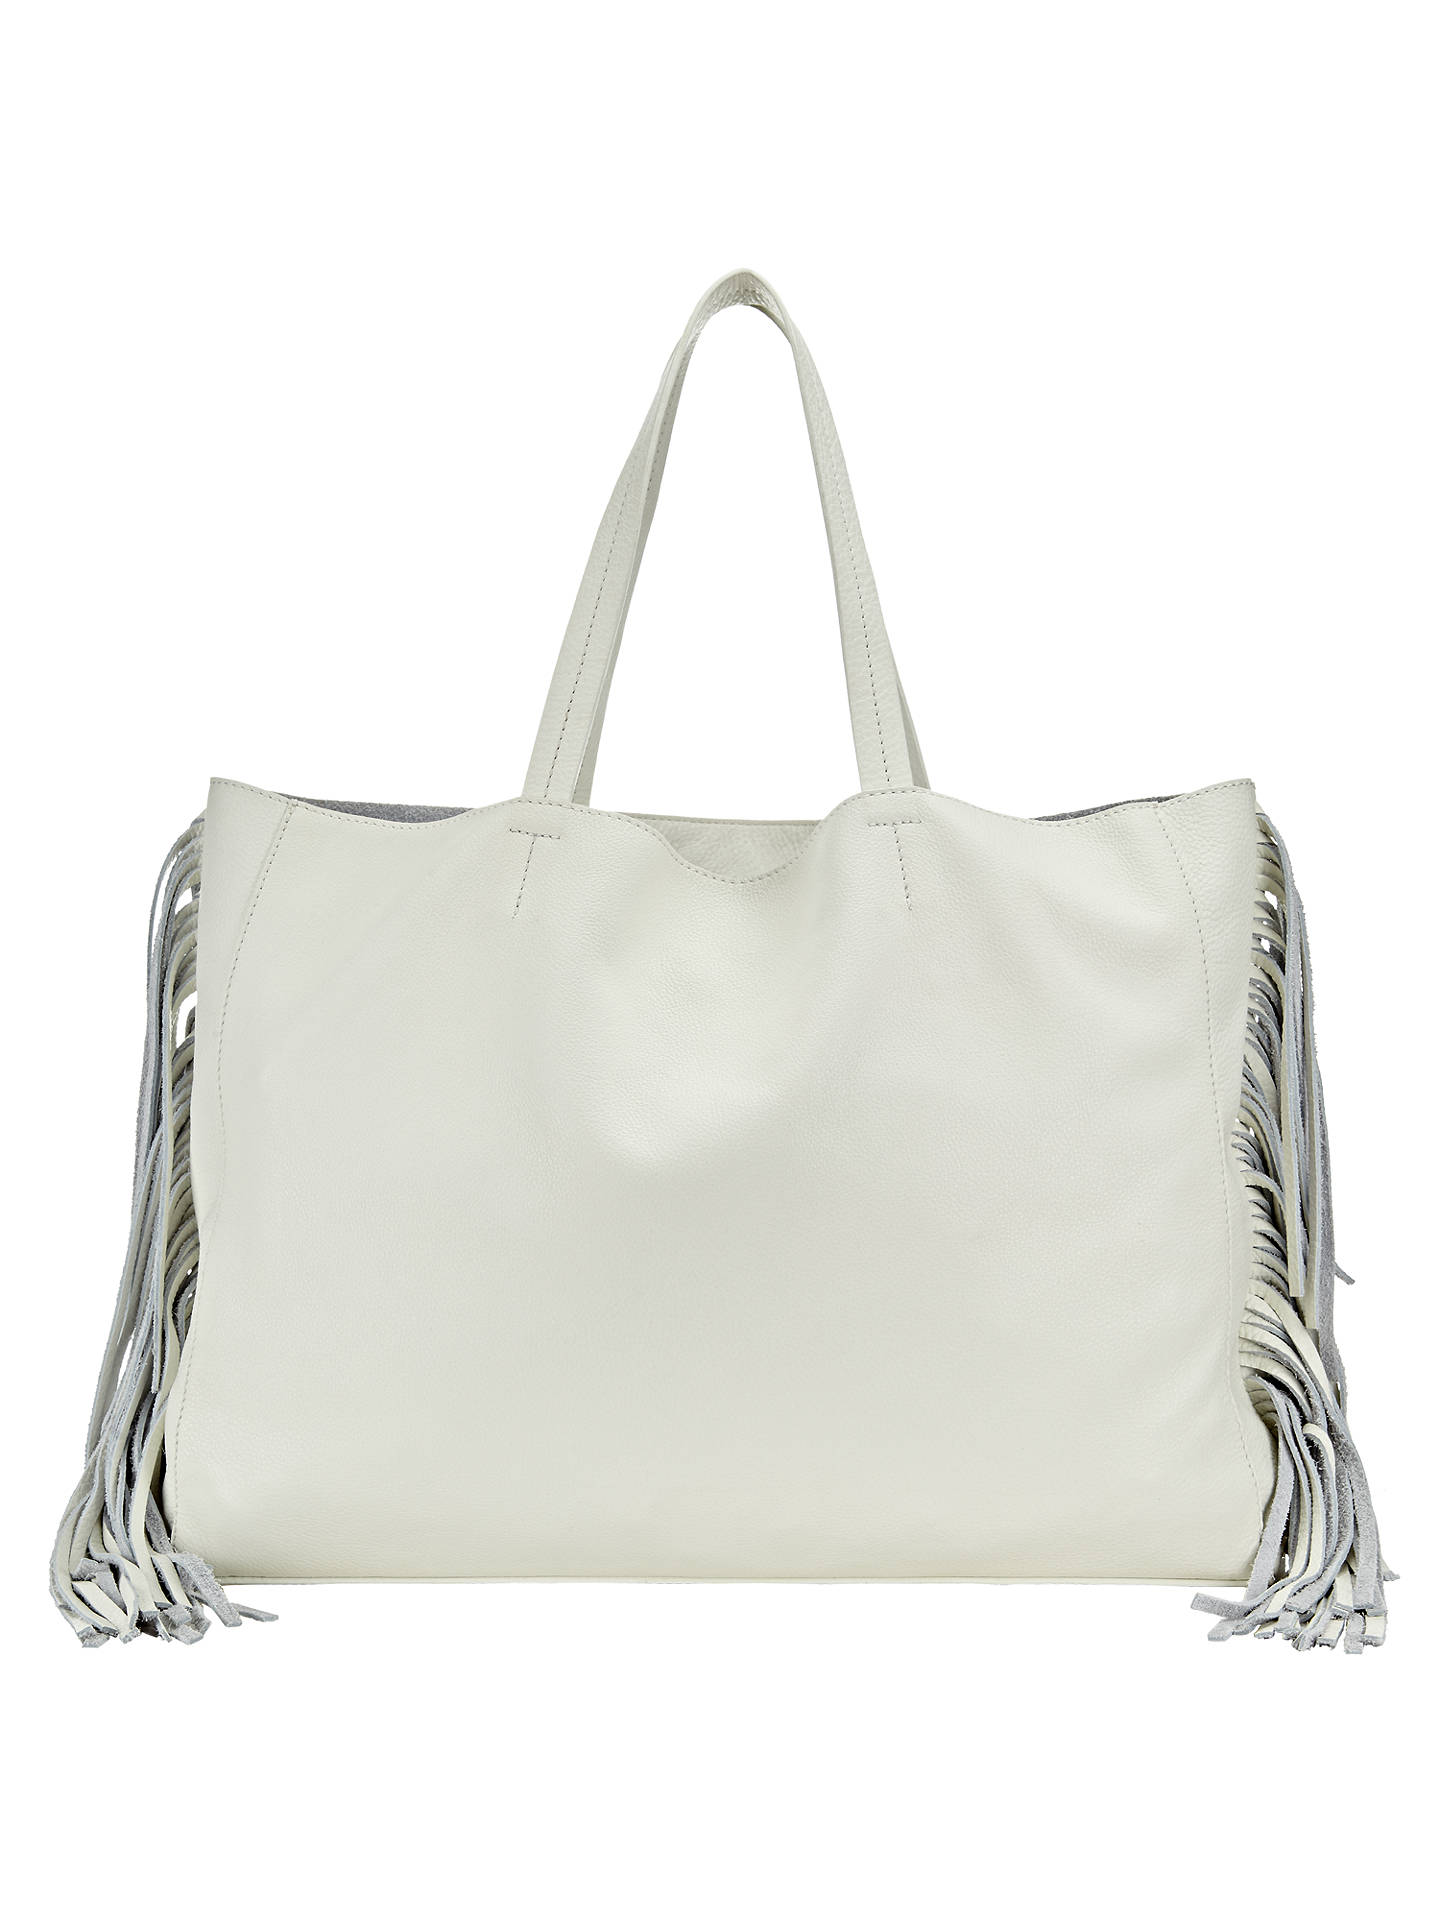 5516855182a Buy Collection WEEKEND by John Lewis Morgan Fringe Leather Tote, White  Online at johnlewis.